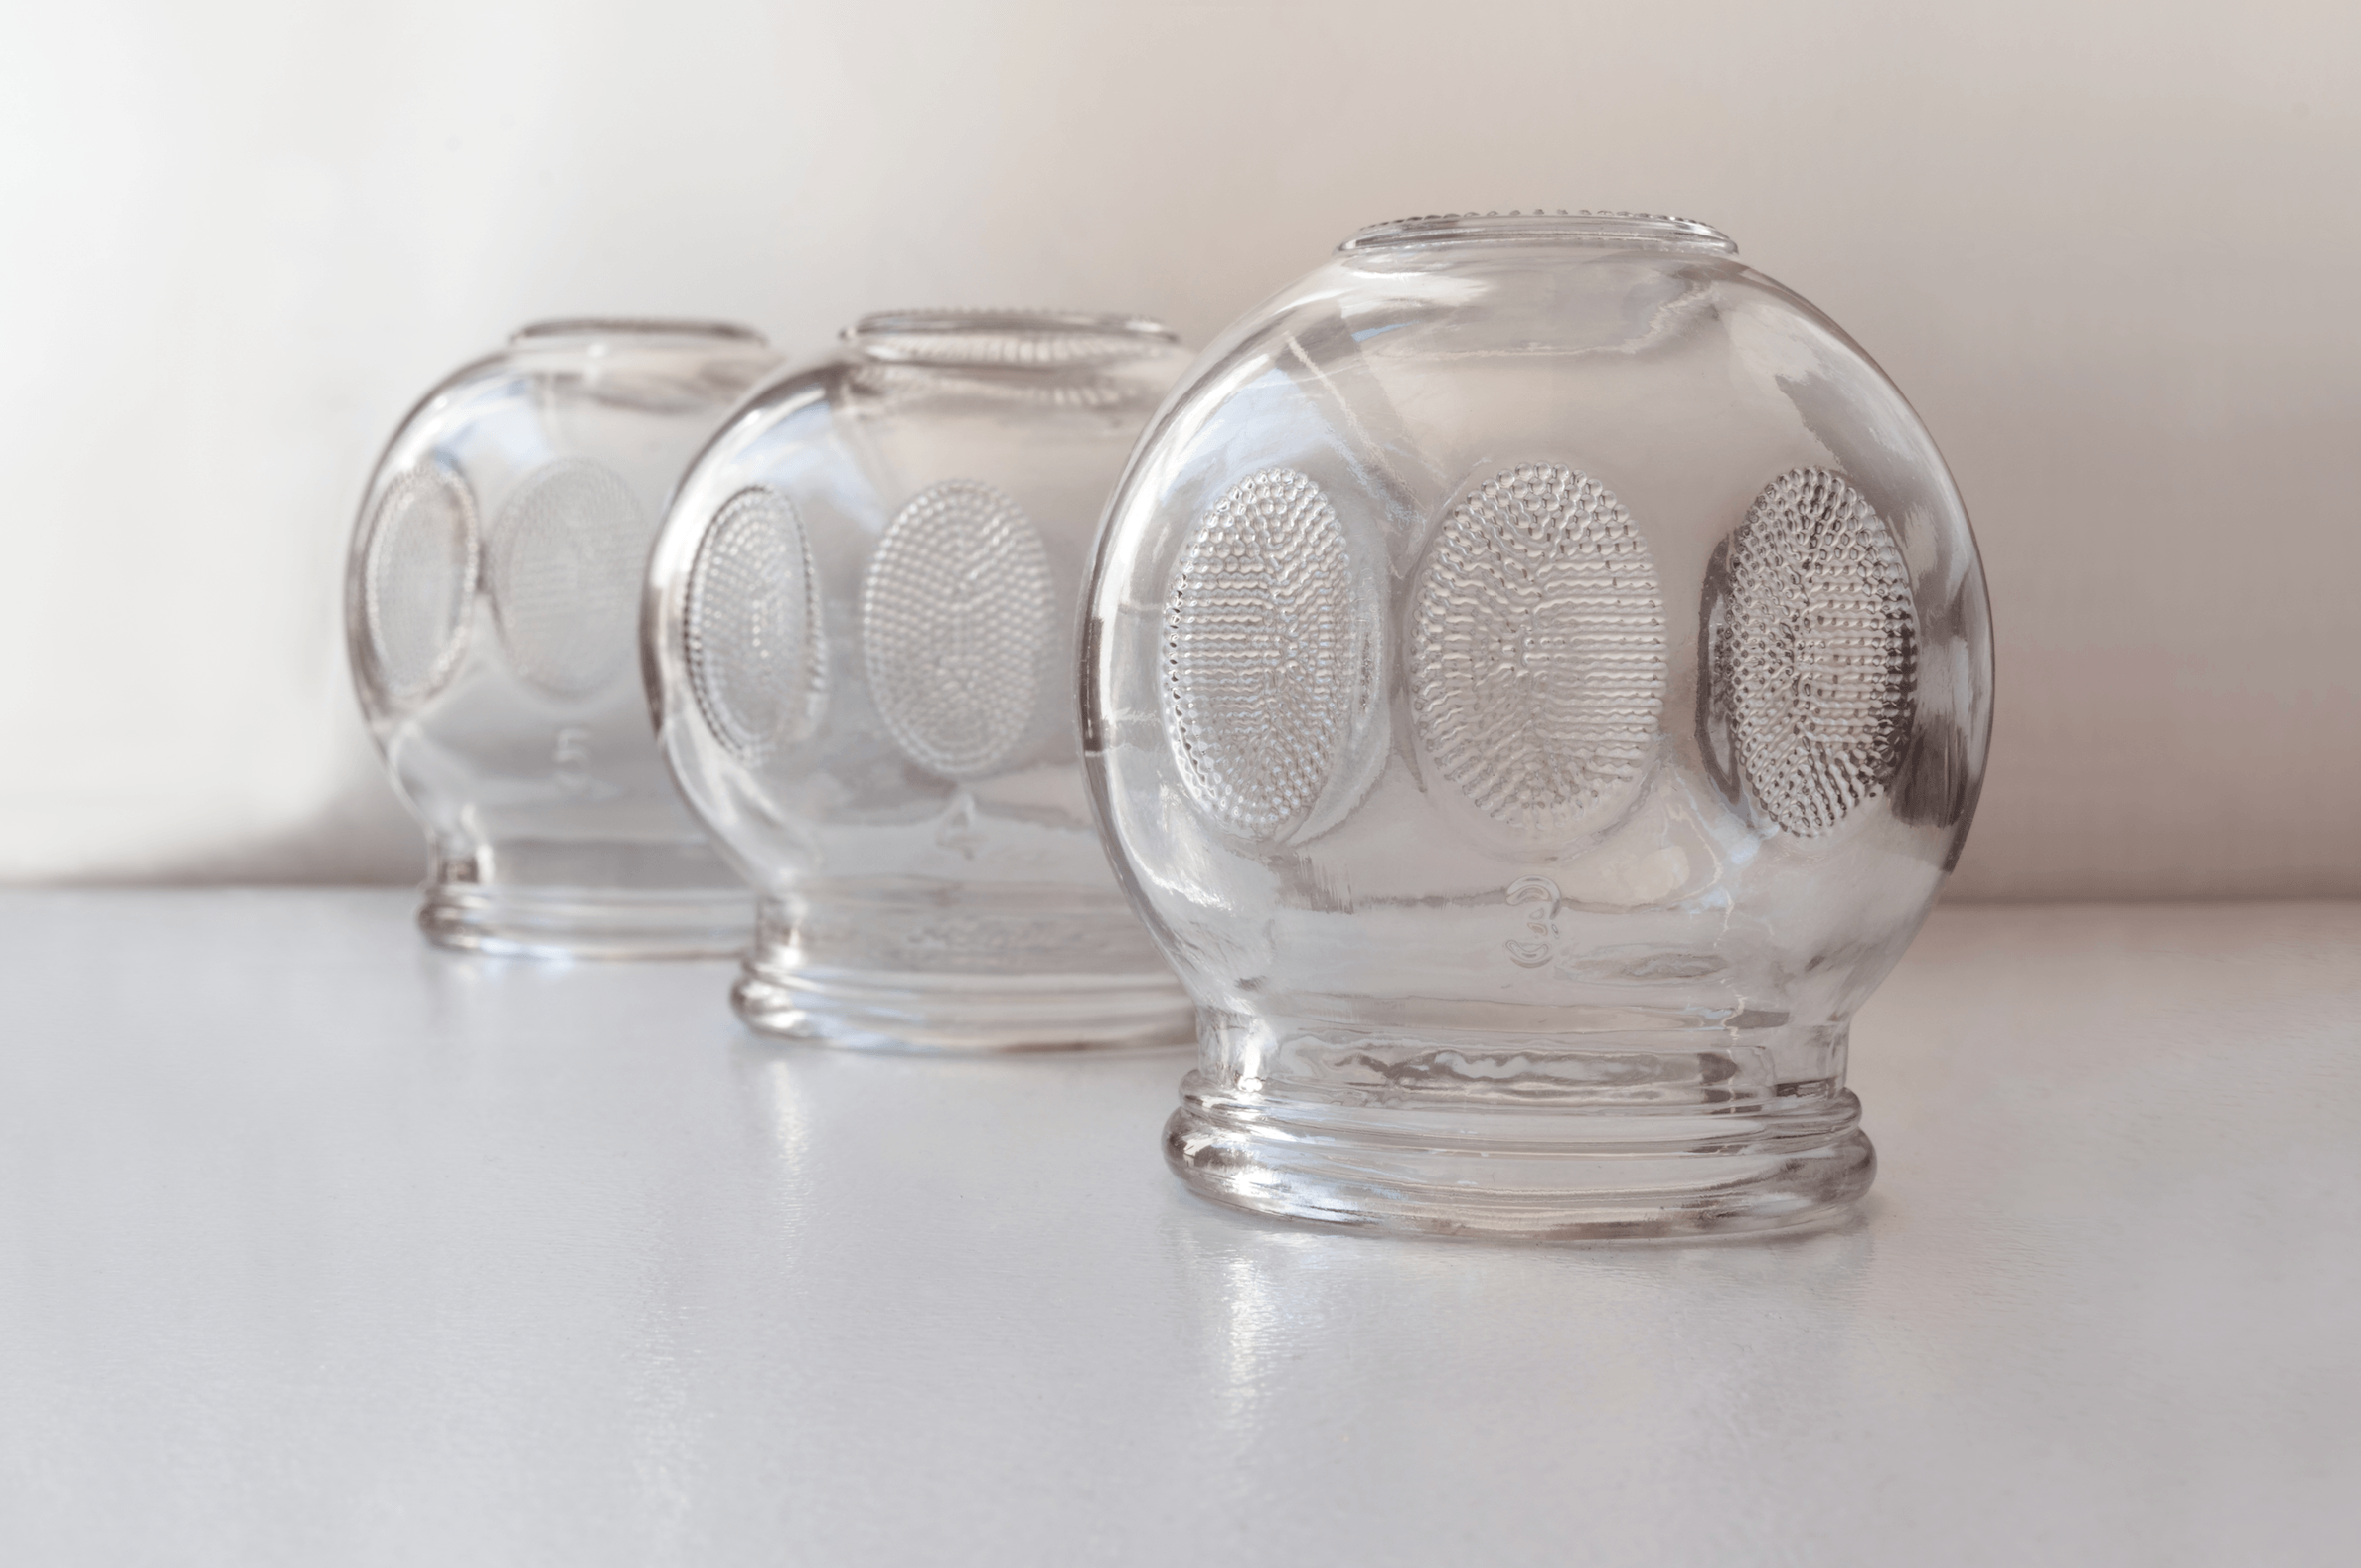 Classical Glass cups used in chinese medicine